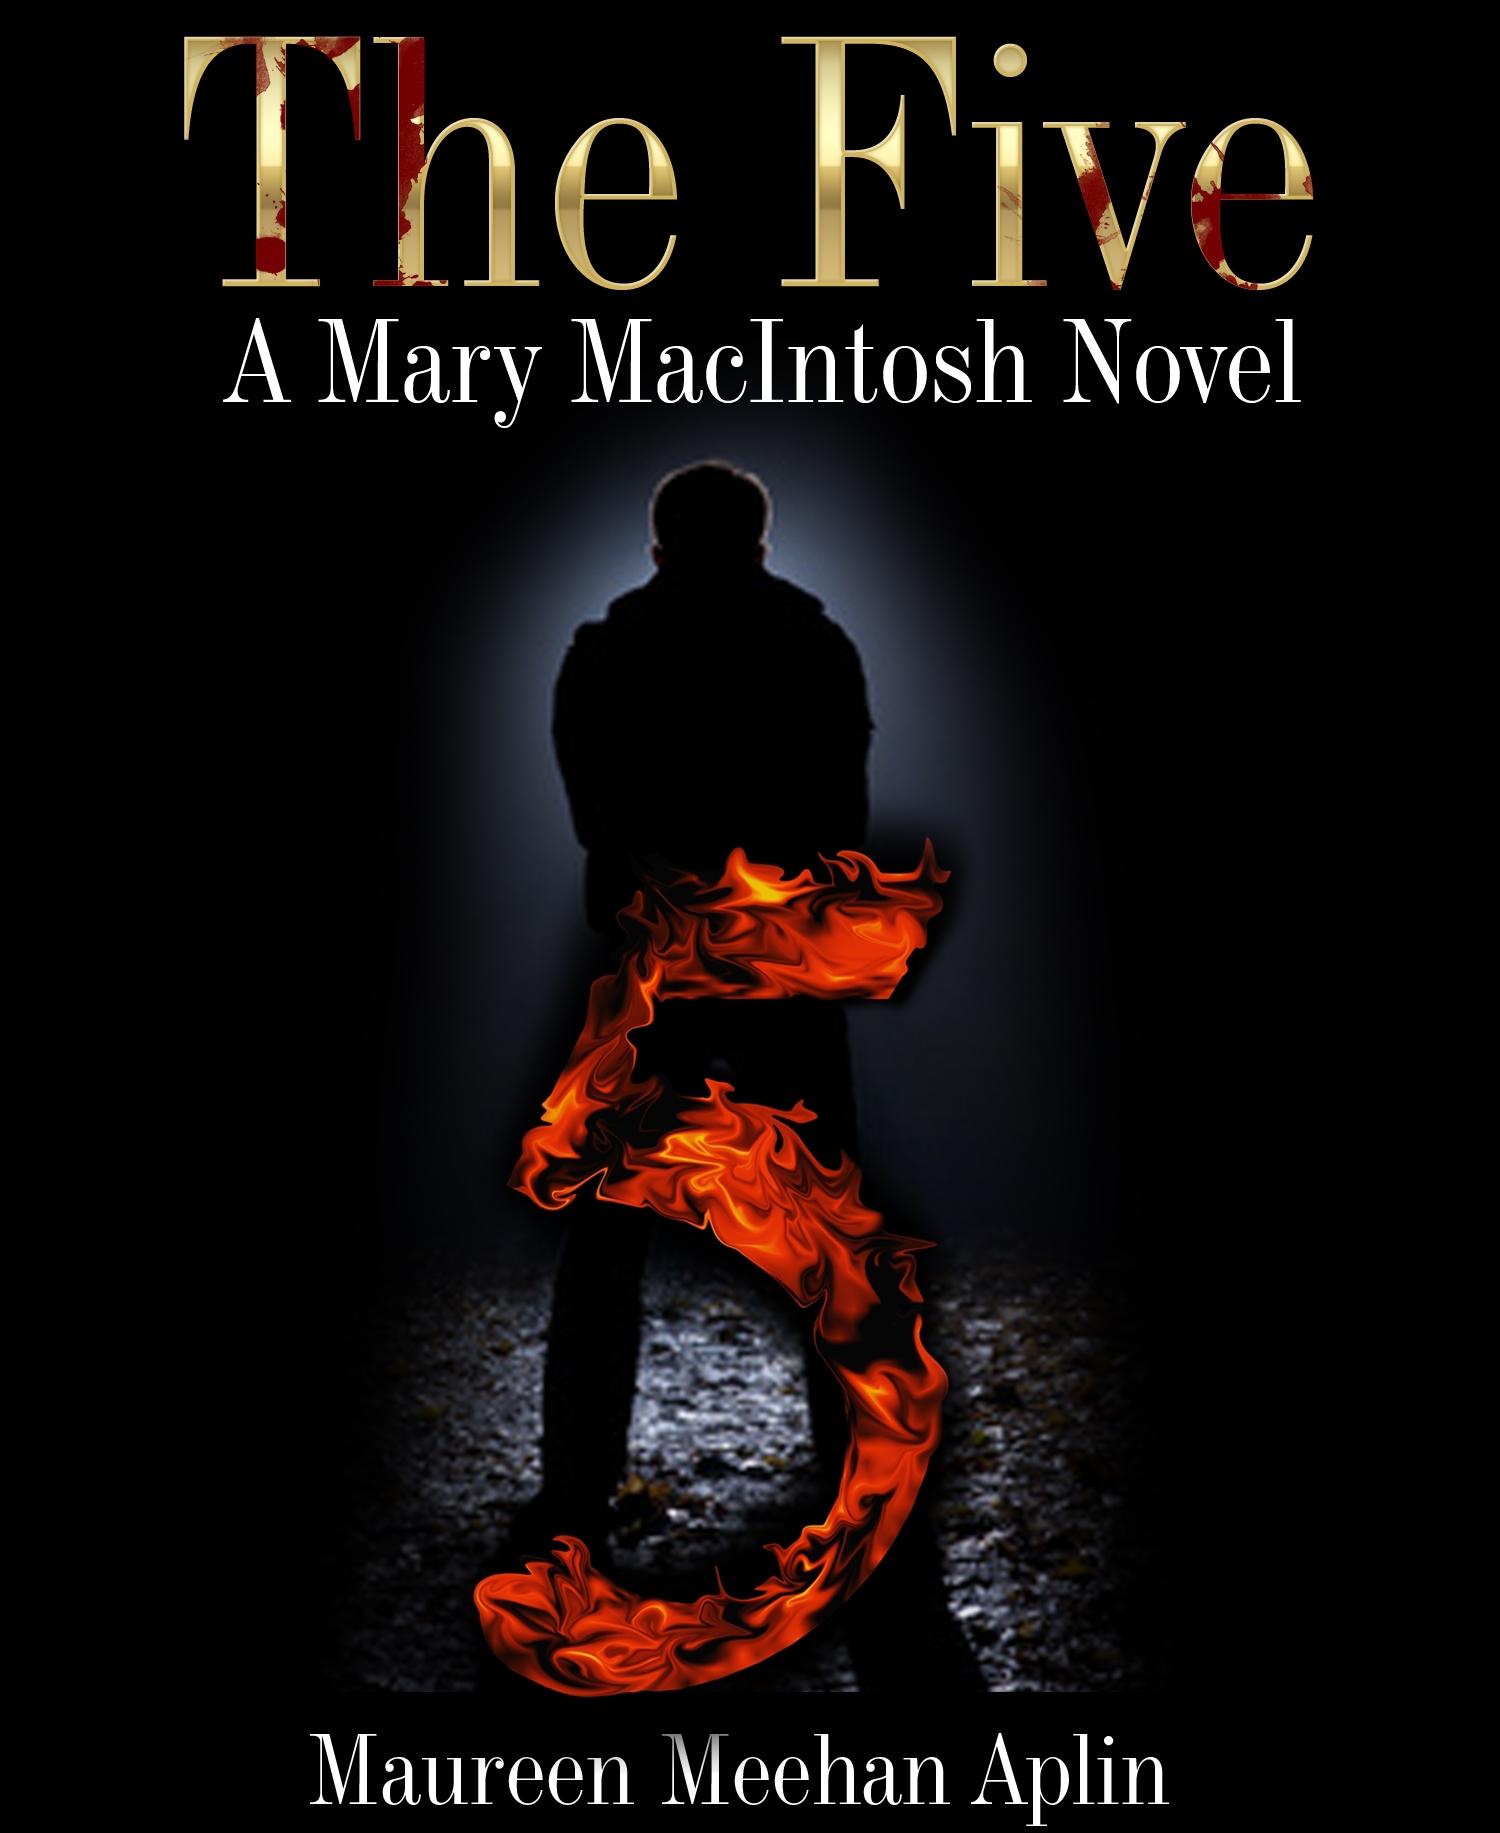 The Five, a Mary MacIntosh novel